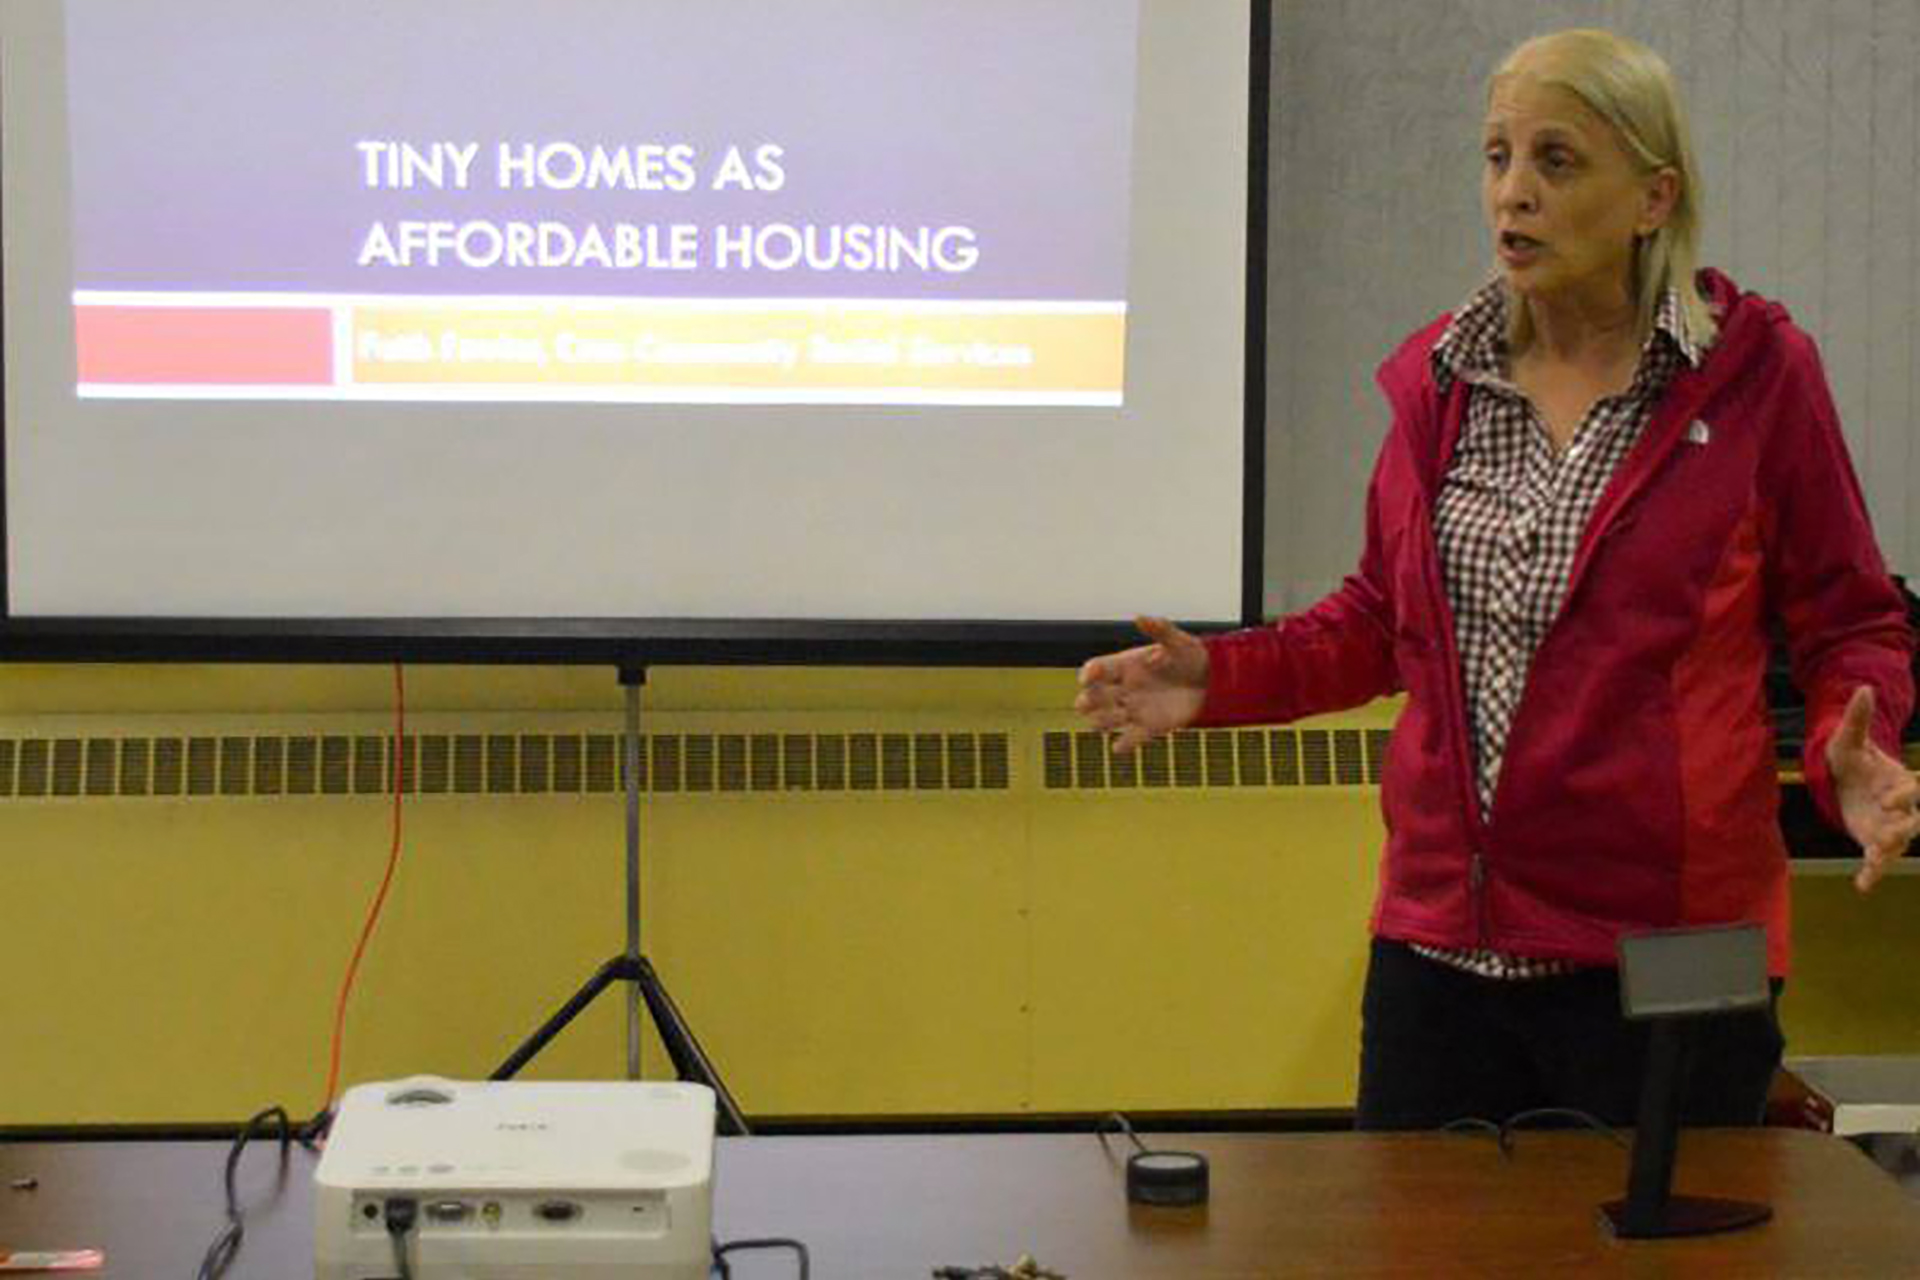 Tiny homes, affordable housing